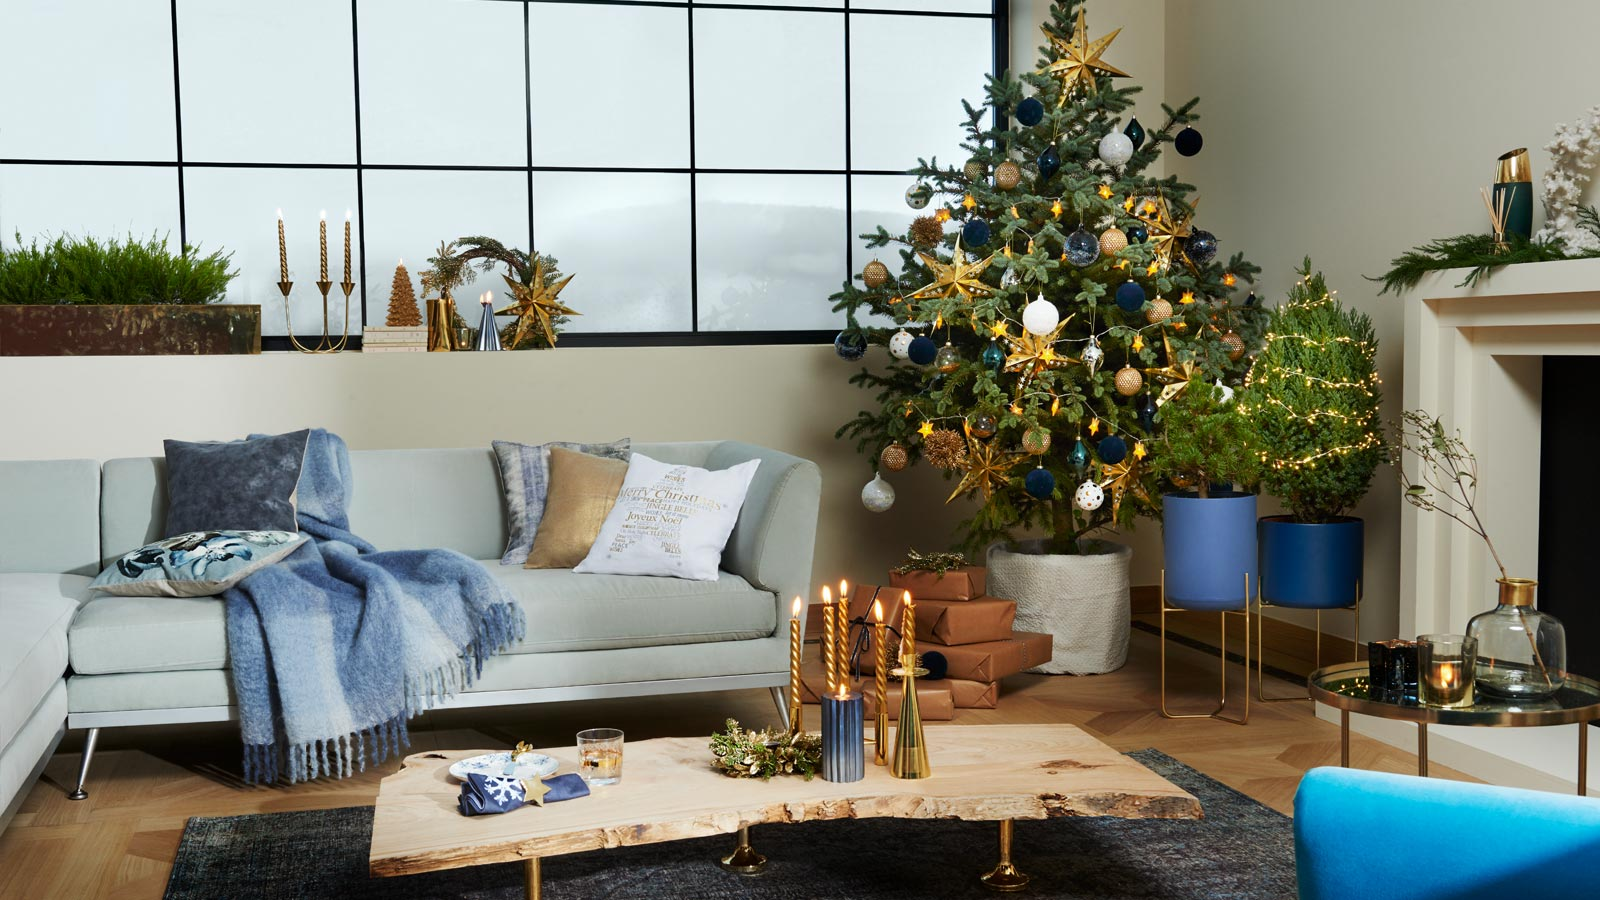 top 5 christmas trends 2017 30s magazine. Black Bedroom Furniture Sets. Home Design Ideas